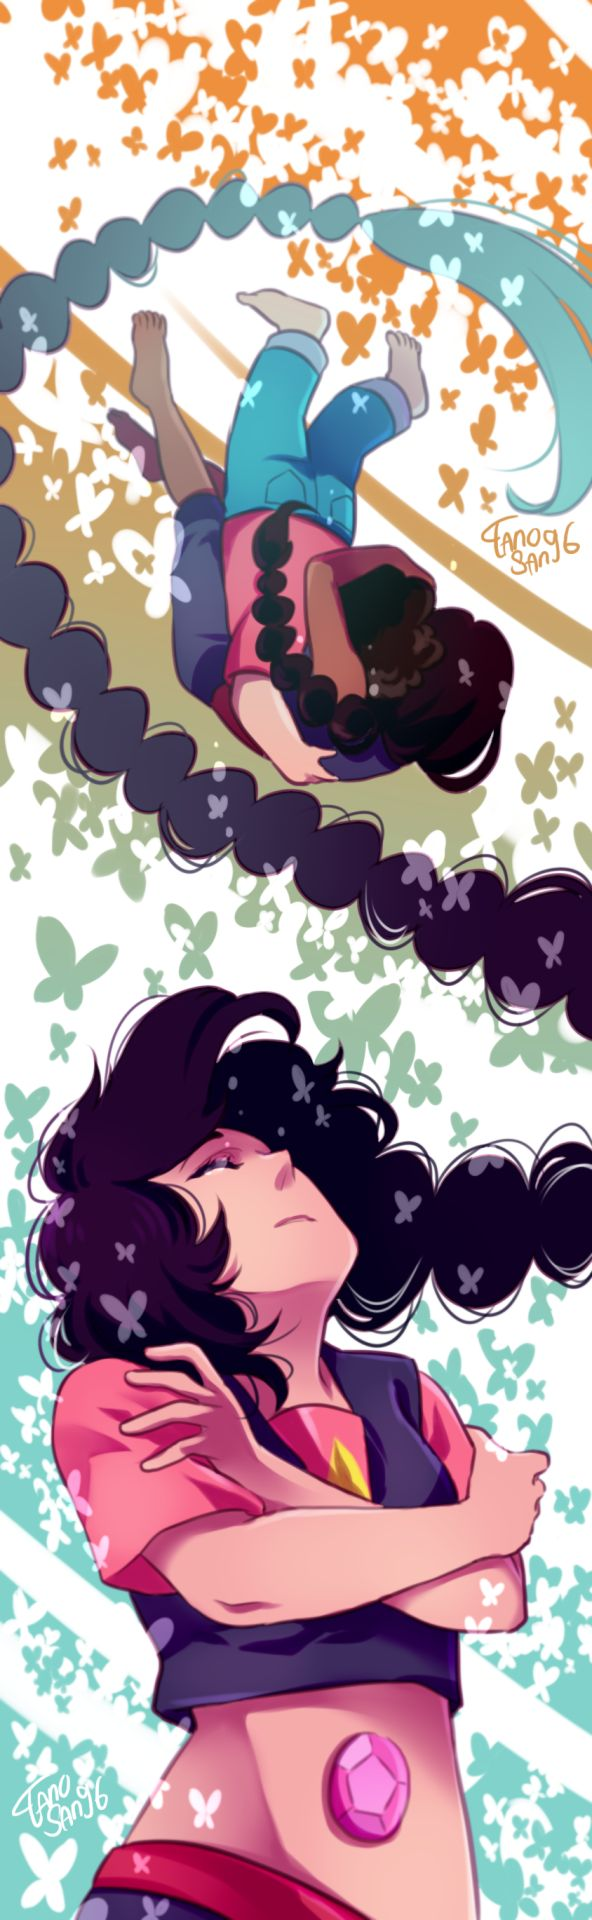 steven universe mindful education | Tumblr